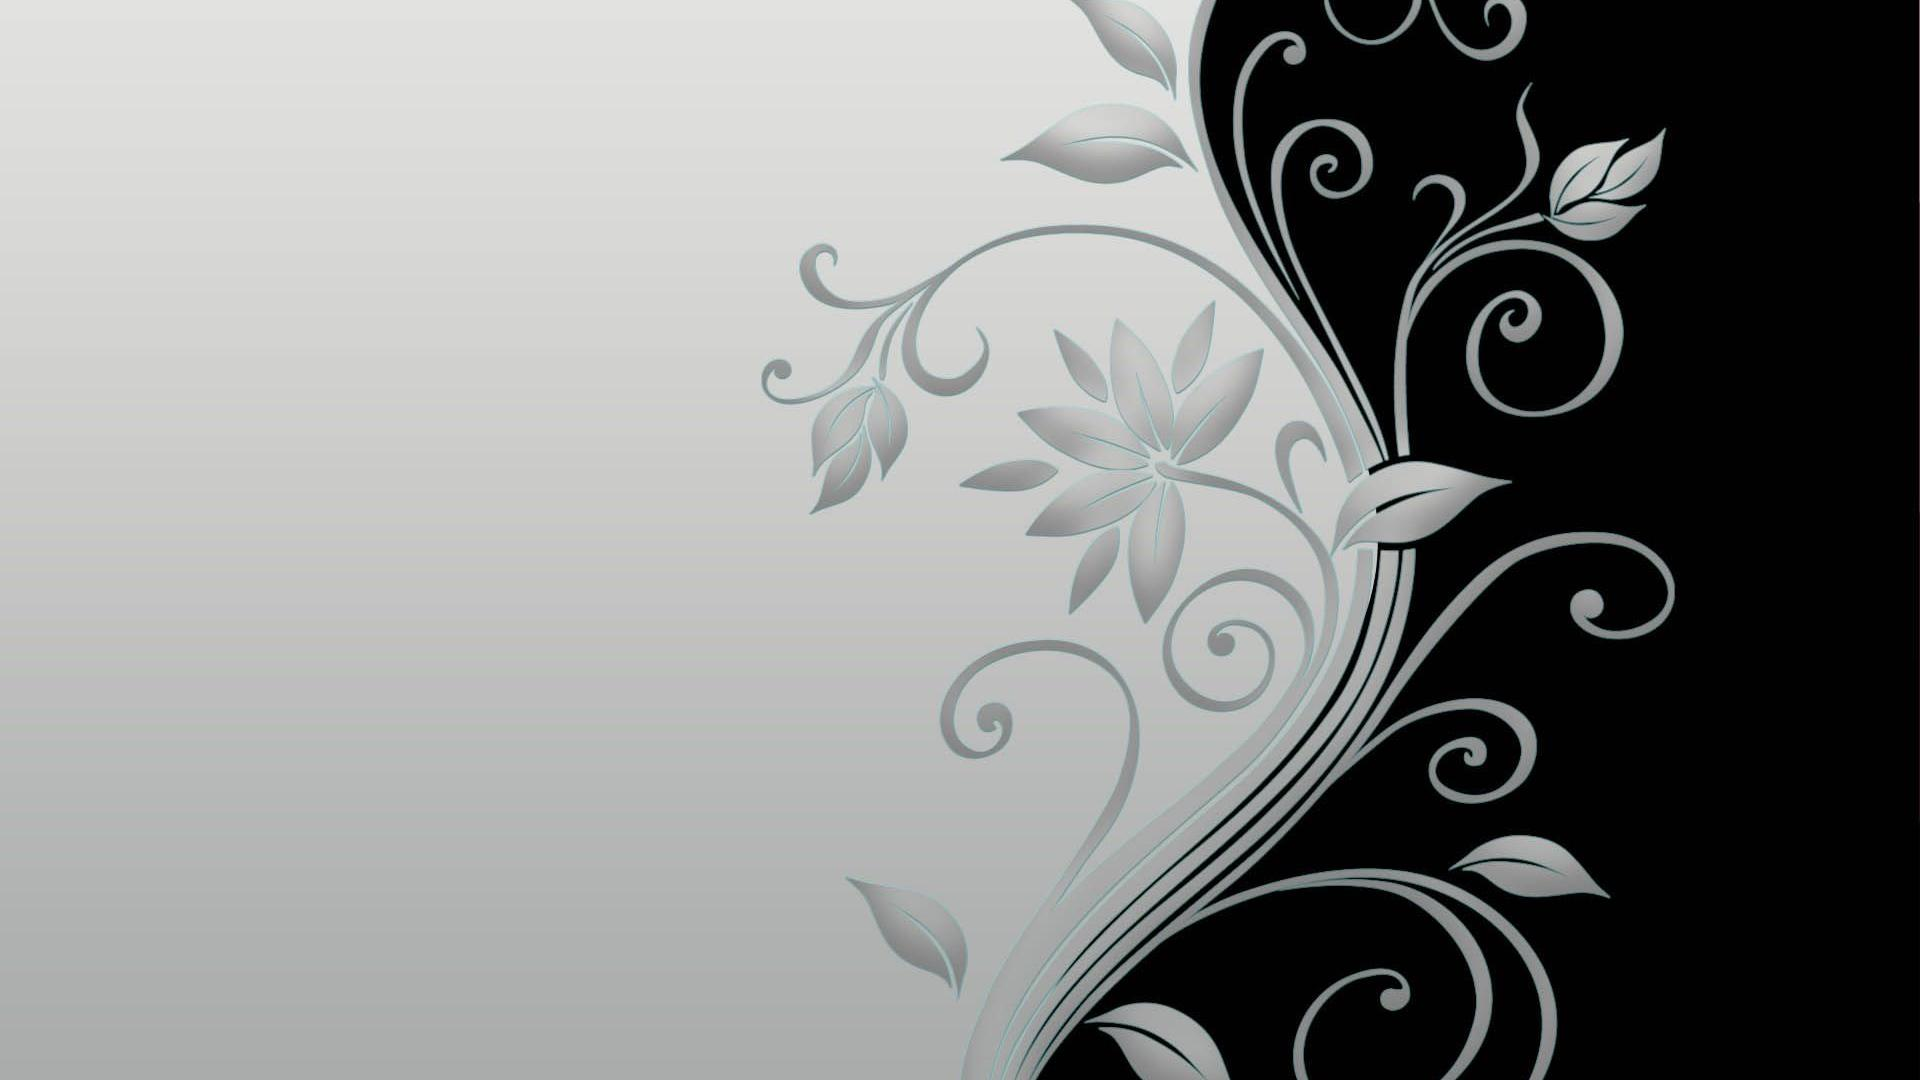 Floral Wallpaper Vector At Getdrawings Free Download